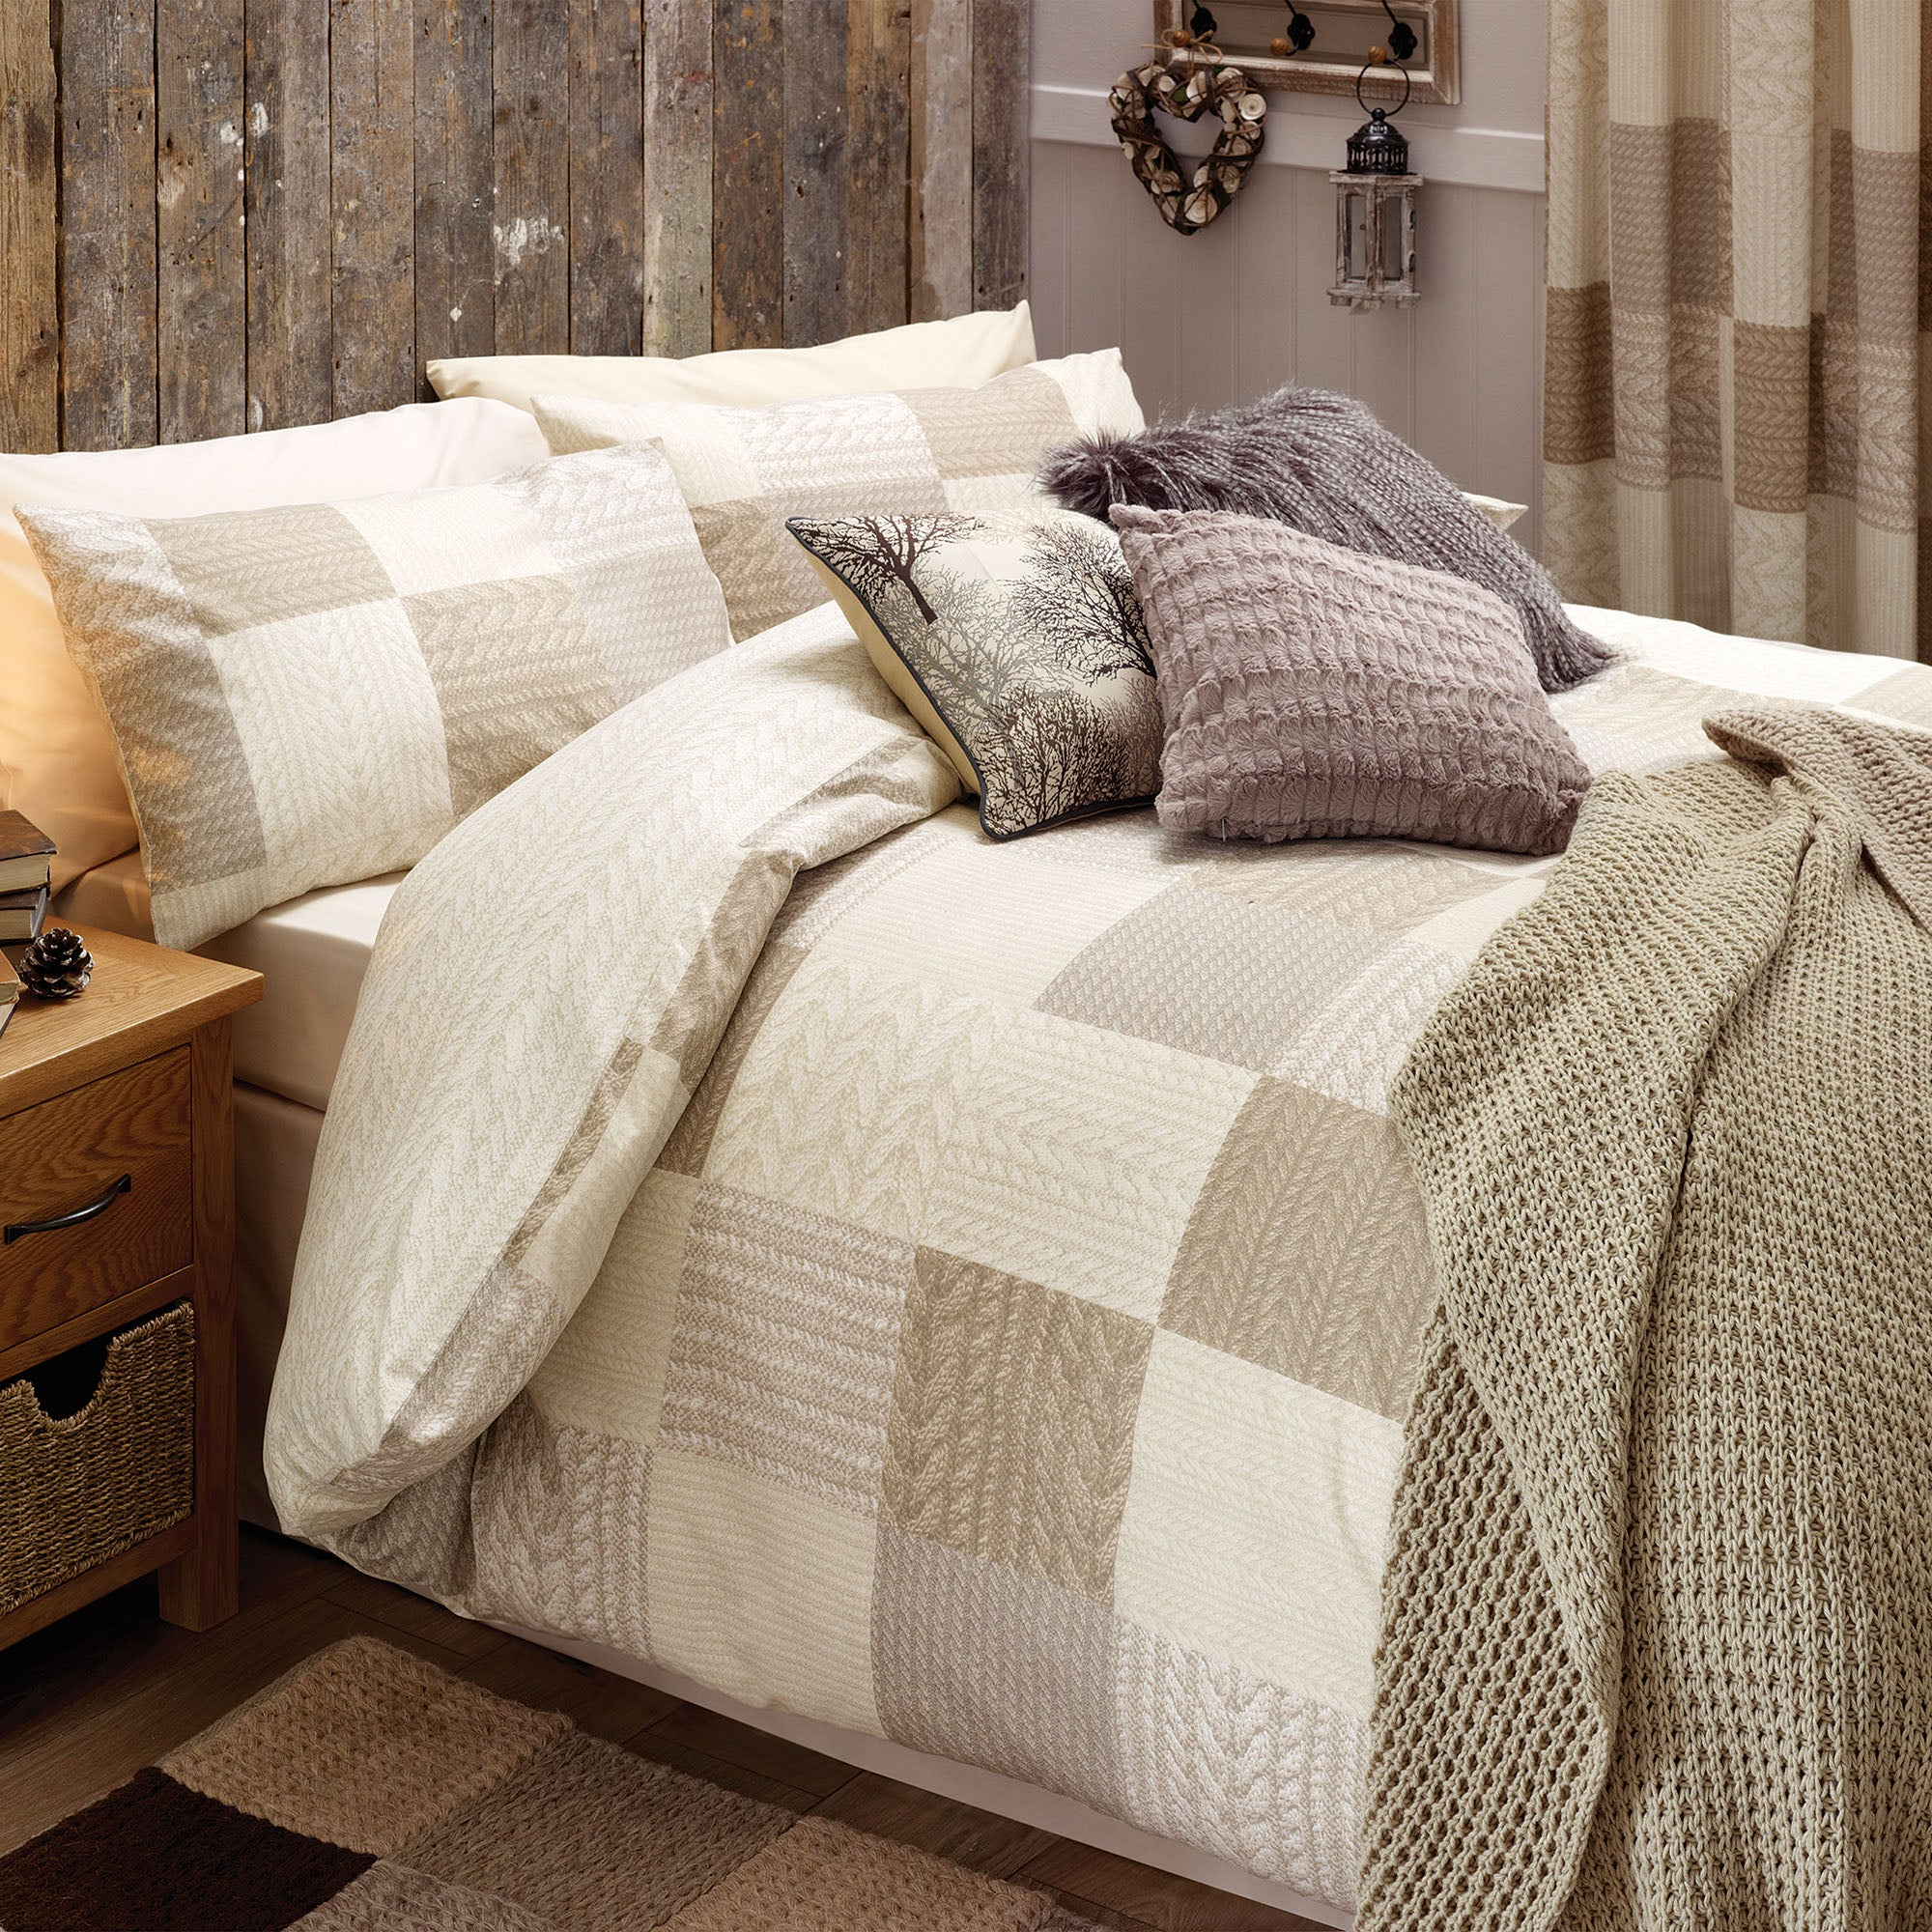 Natural Knitted Patchwork Bed Linen Collection